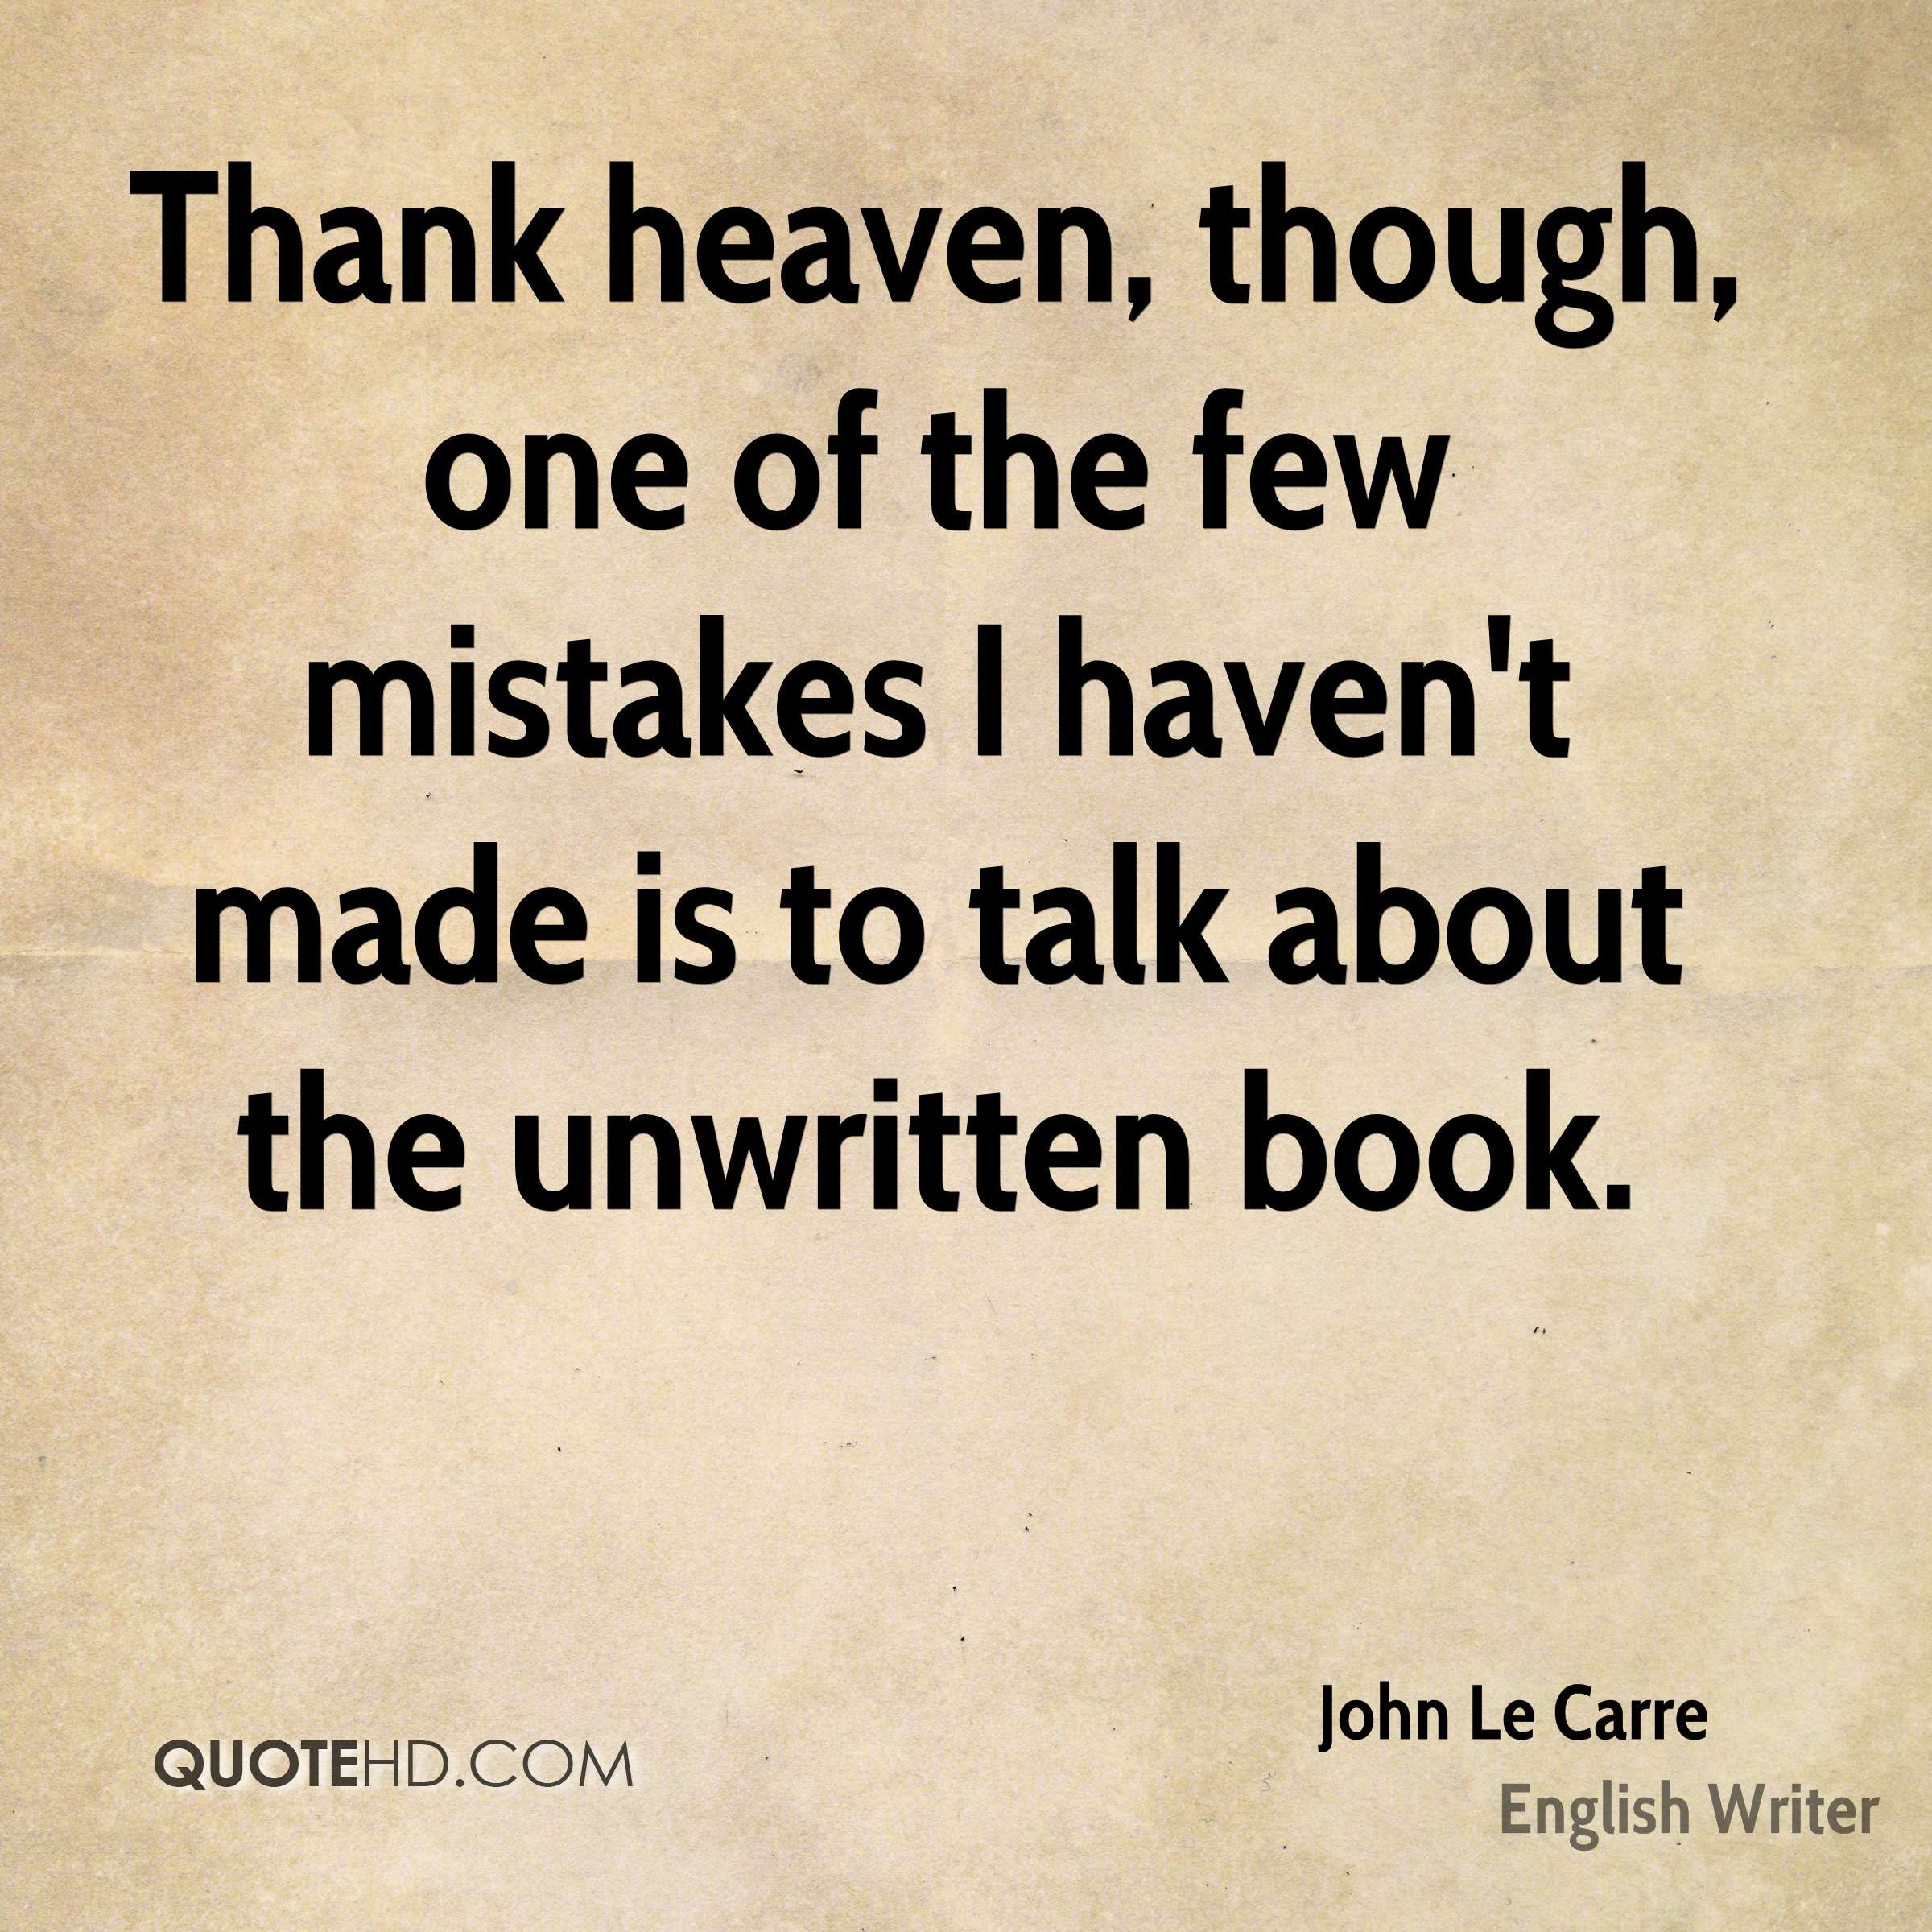 Thank heaven, though, one of the few mistakes I haven't made is to talk about the unwritten book.